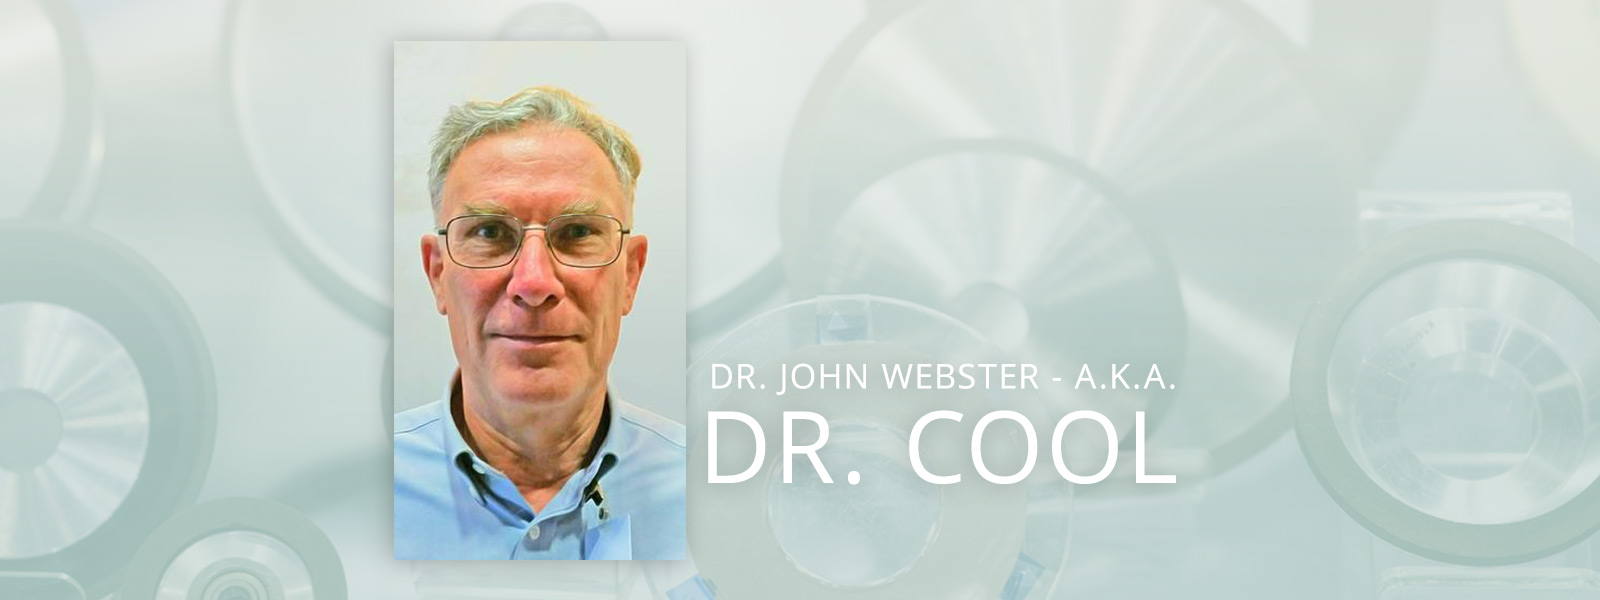 Dr. John Webster